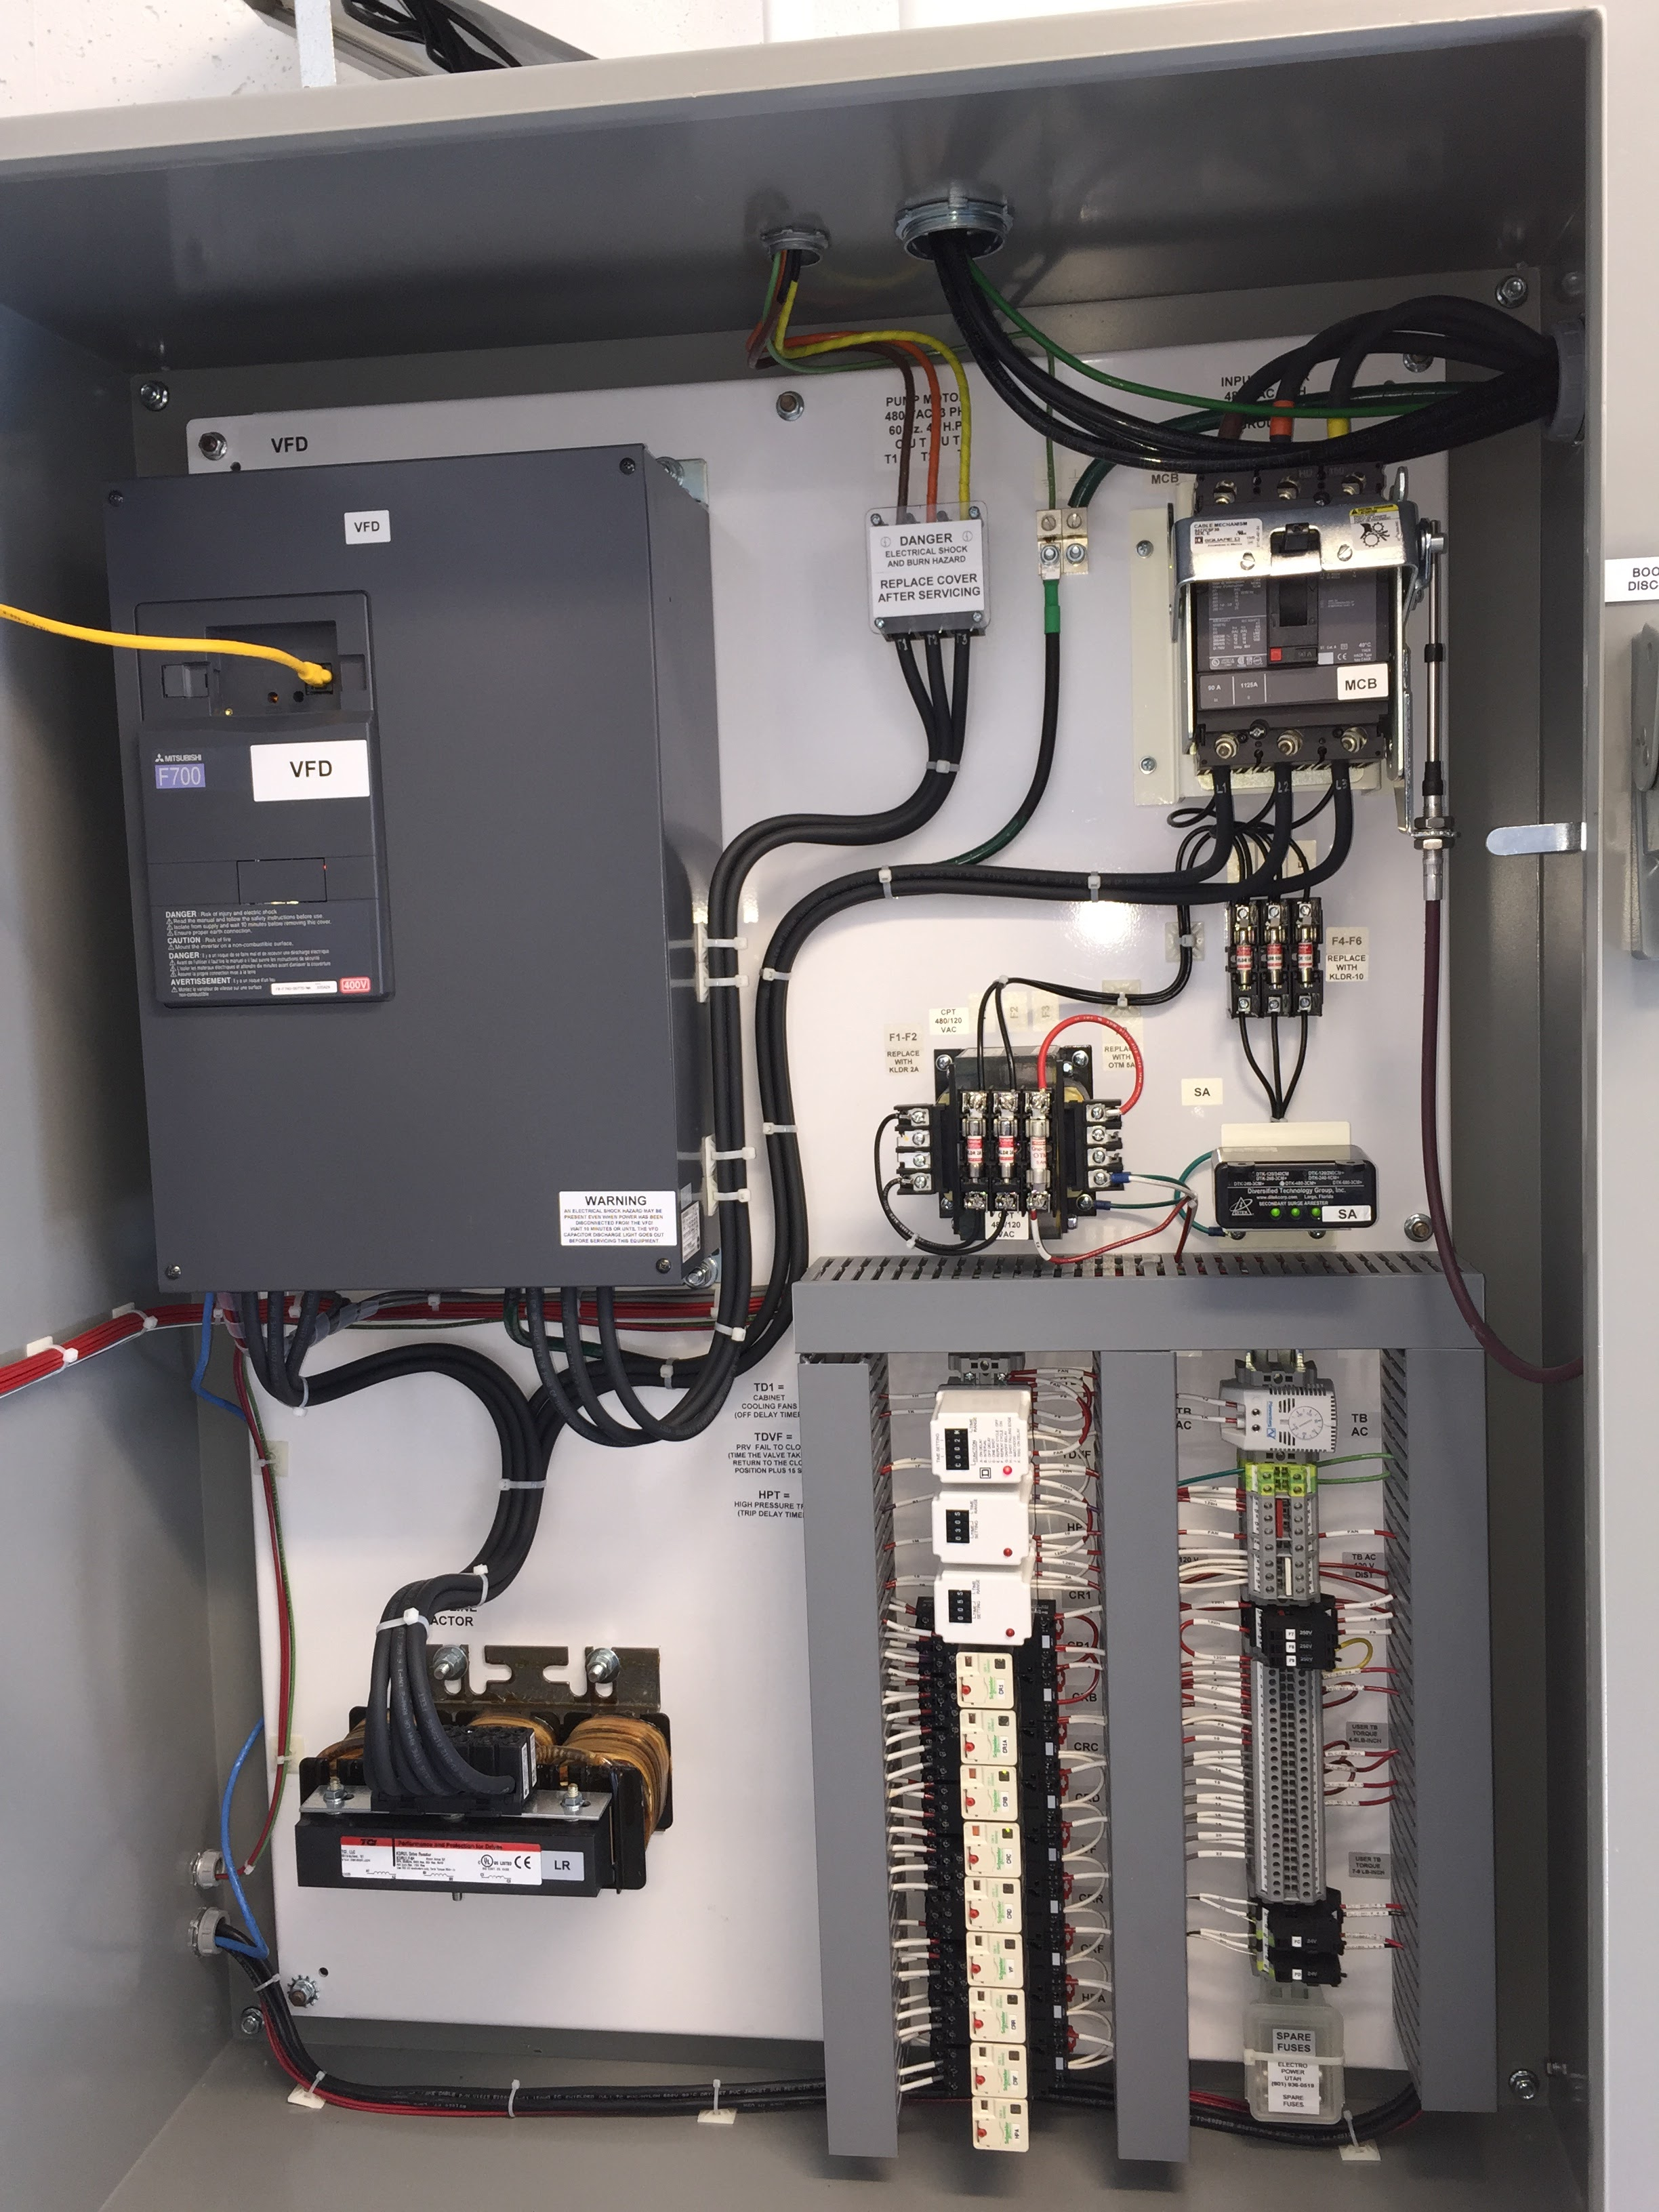 Variable Frequency Drive (VFD) used on a Pumping System to Improve Energy Efficiency